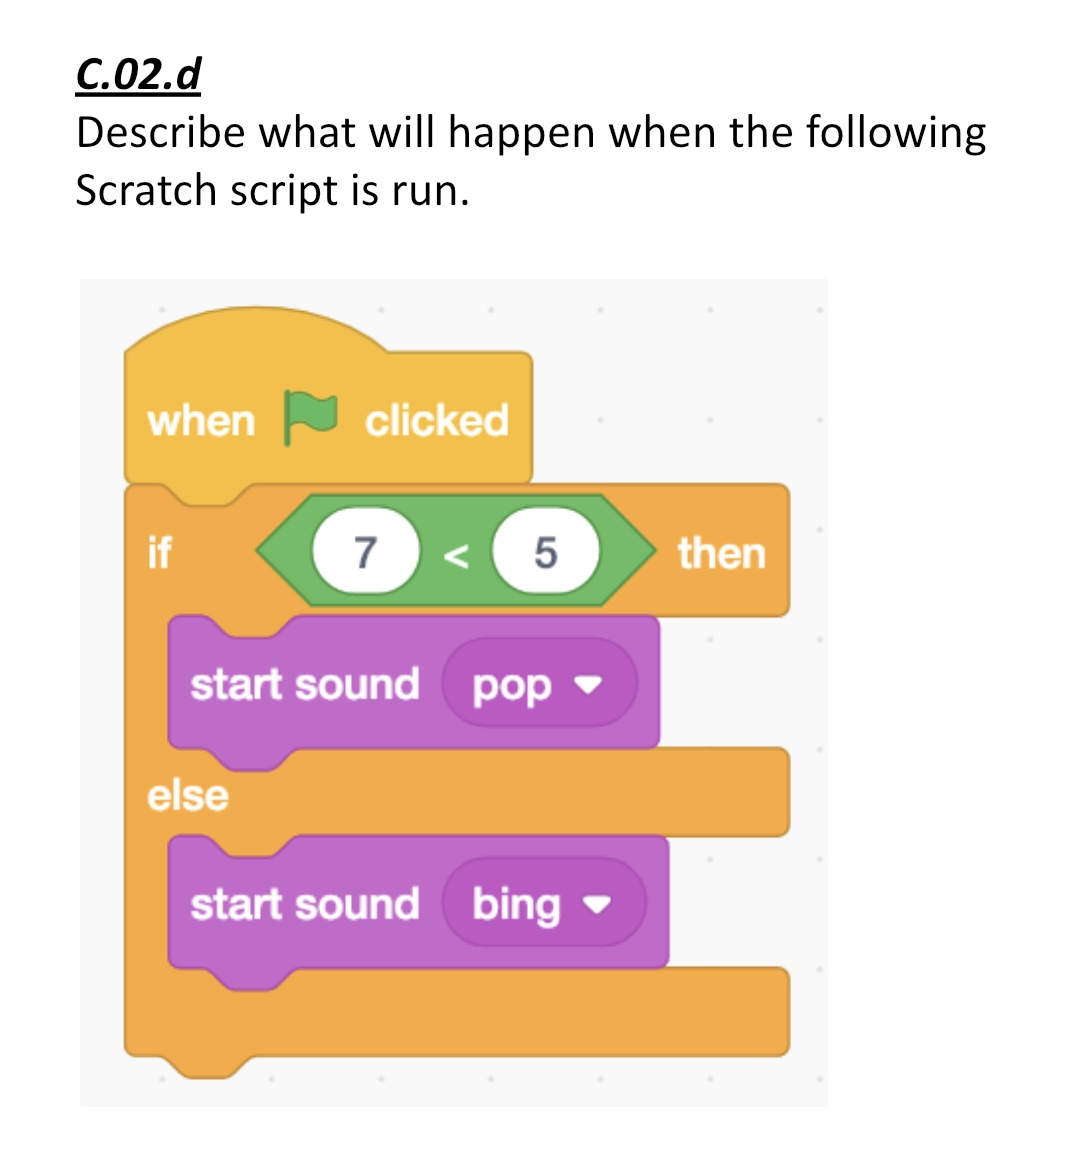 Conditional logic assessment item asking students 'Describe what will happen when the following Scratch script is run' followed by a graphic showing a 'When green flag clicked' block containing an If-Else block with the condition '7 < 5'; 'then' contains a 'start sound pop' block, while 'else' contains a 'start sound bing' block